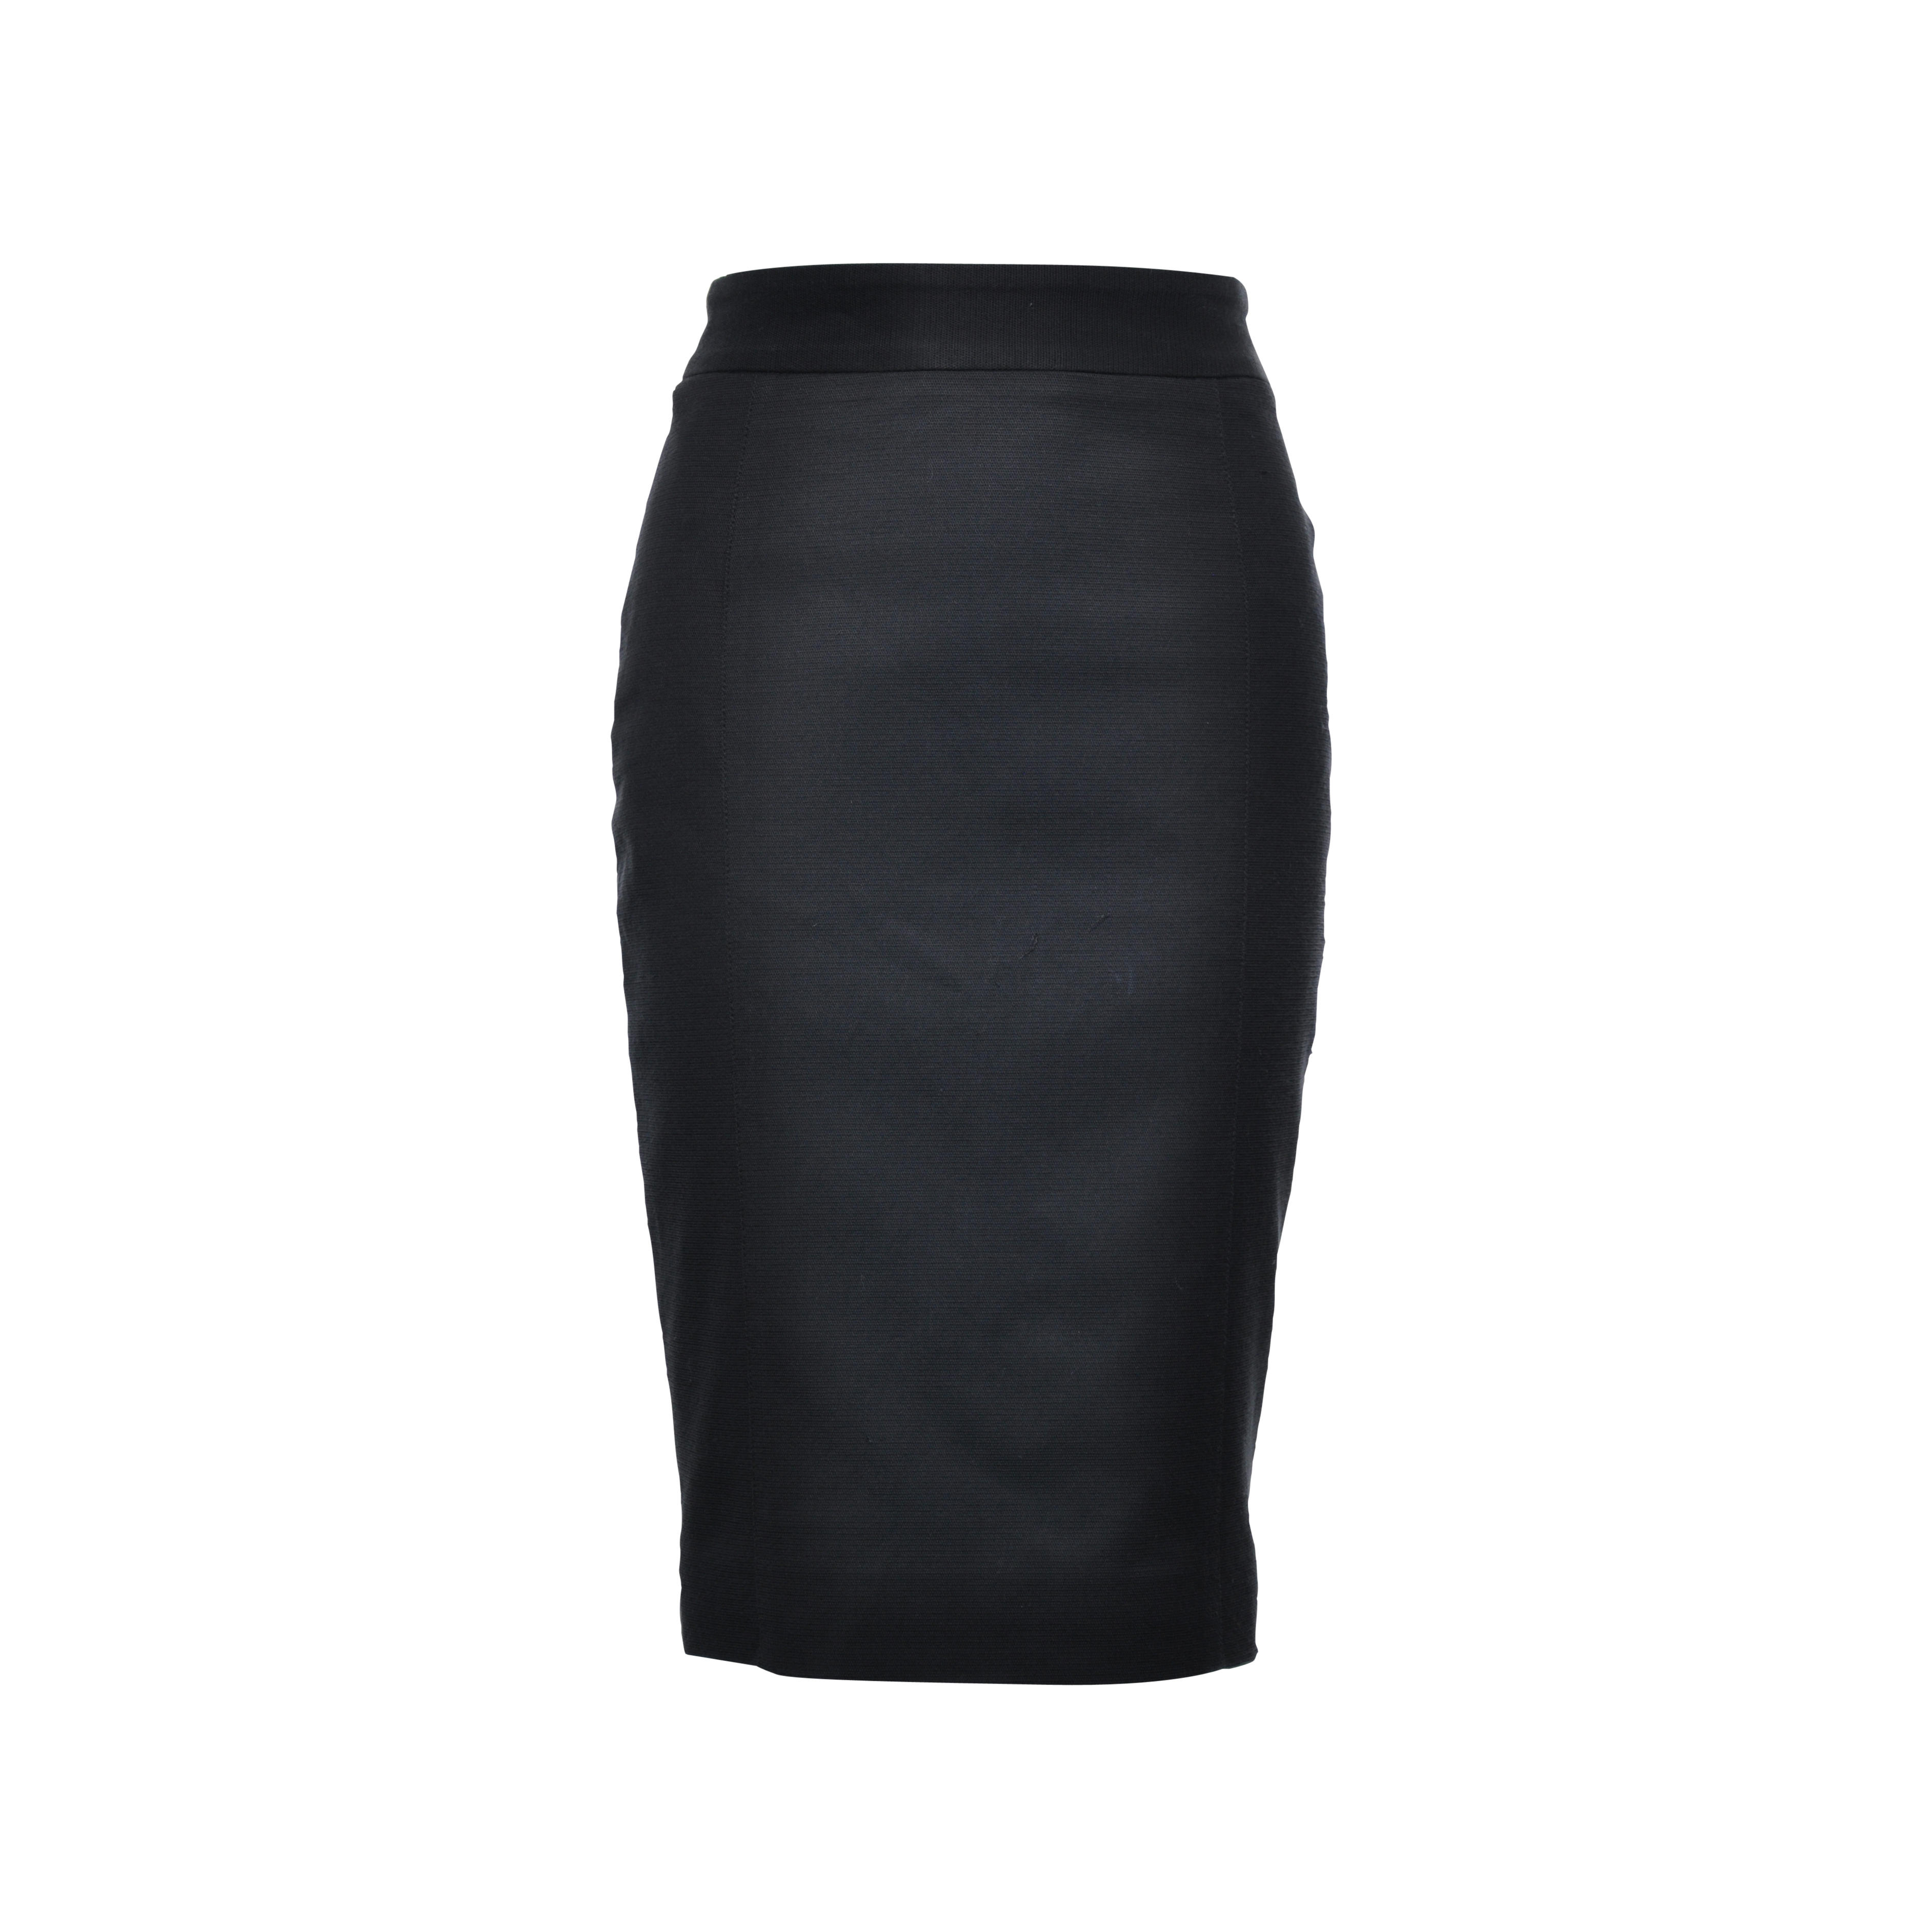 843c55941d84 Authentic Second Hand Dolce   Gabbana Black Pencil Skirt (PSS-141-00021)